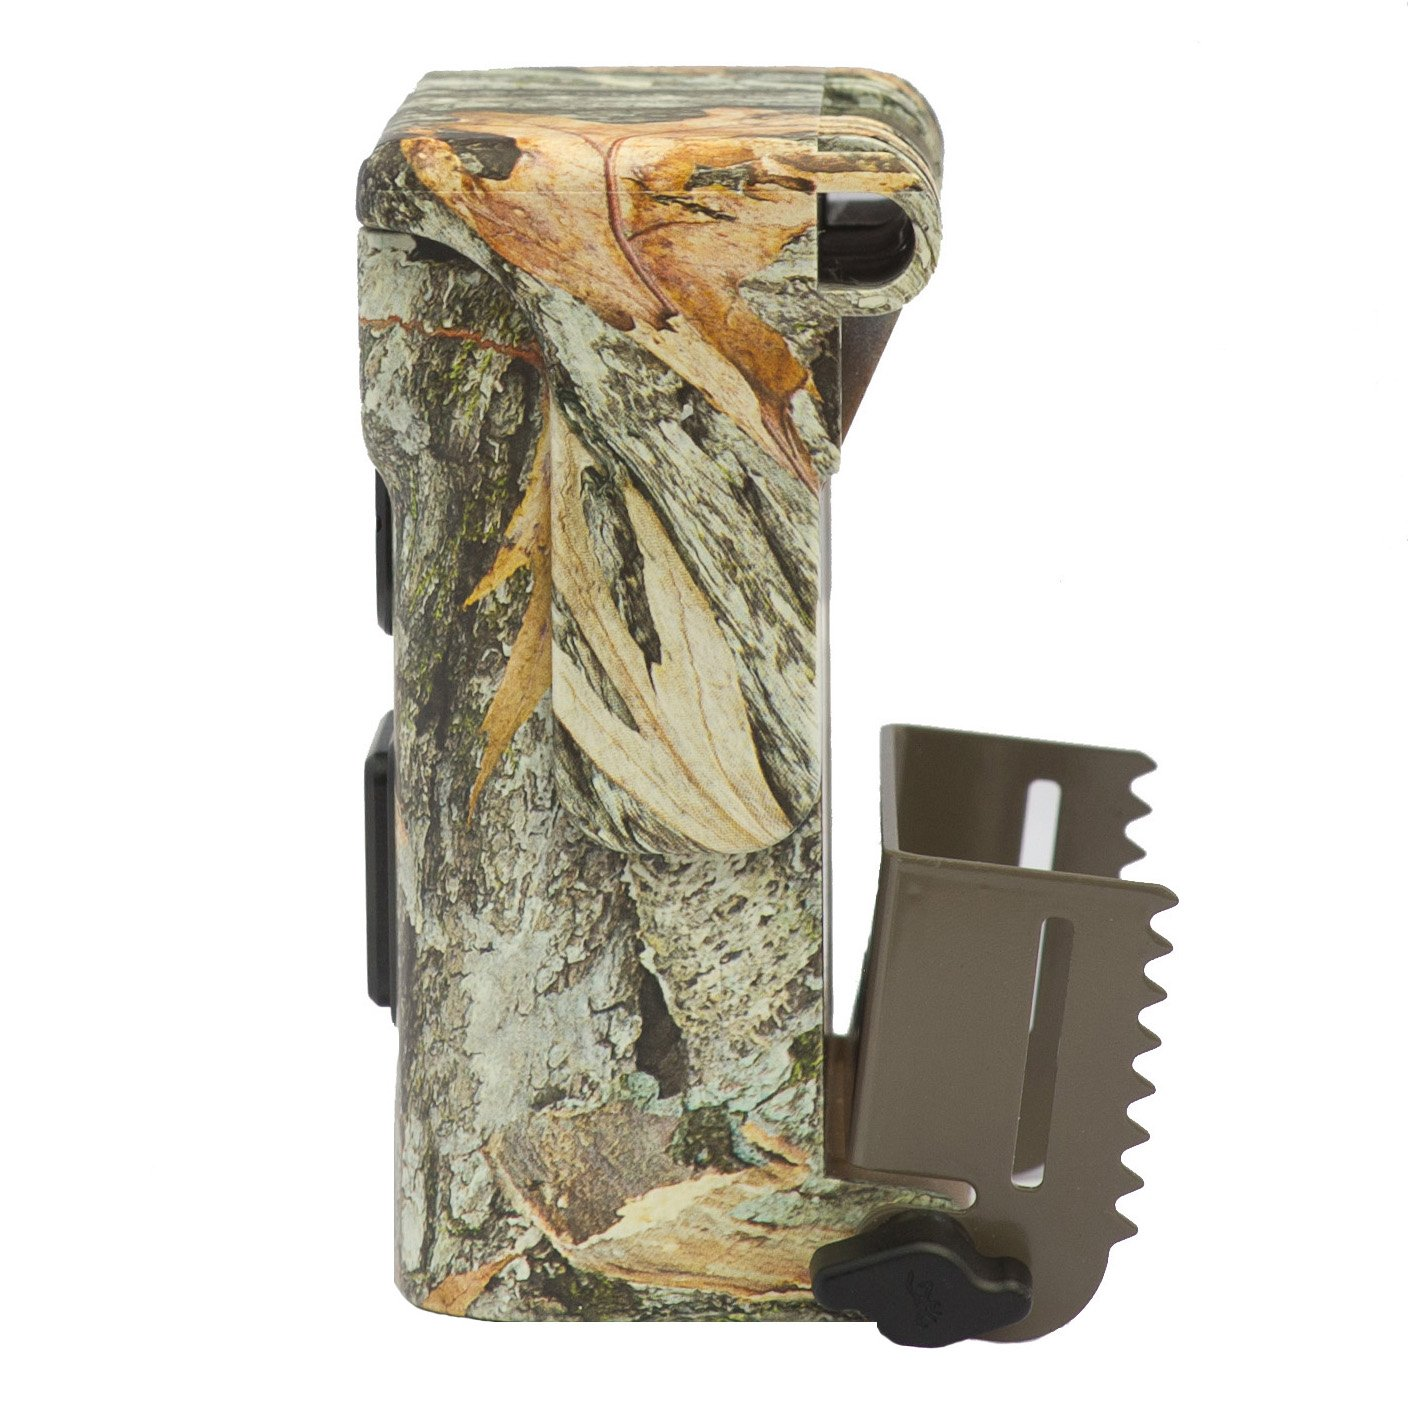 Moultrie Browning Trail Cameras Defender 850 20MP Bluetooth IR Game Camera + 16GB SD Card by Moultrie (Image #3)